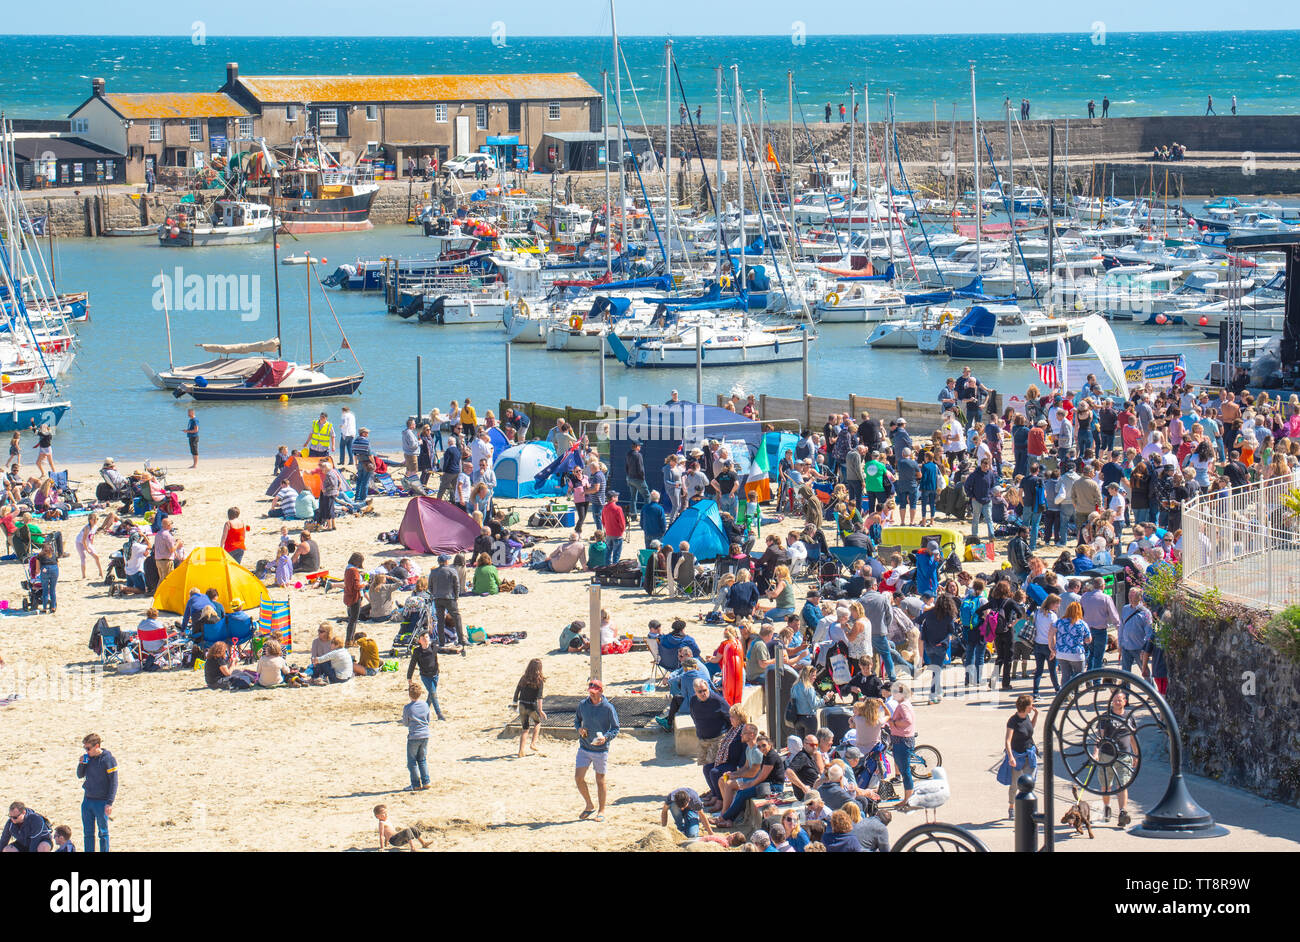 "Lyme Regis, Dorset, UK. 15th June 2019. UK Weather: Crowds of musicians and visitors flock to the beach enjoy an afternoon of music as the annual Guitars on the Beach event gets underway on the beach at  Lyme Regis on a glorious afternoon of warm sunshine and bright blue skies. The crowd is the star of the show as guitarists of all ages and abilities gather together on the beach perform together as 'Britain's biggest band'. People enjoy the laid back festival atmosphere before they perform this year's chosen song ""On the Beach"".  Credit: Celia McMahon/Alamy Live News. - Stock Image"